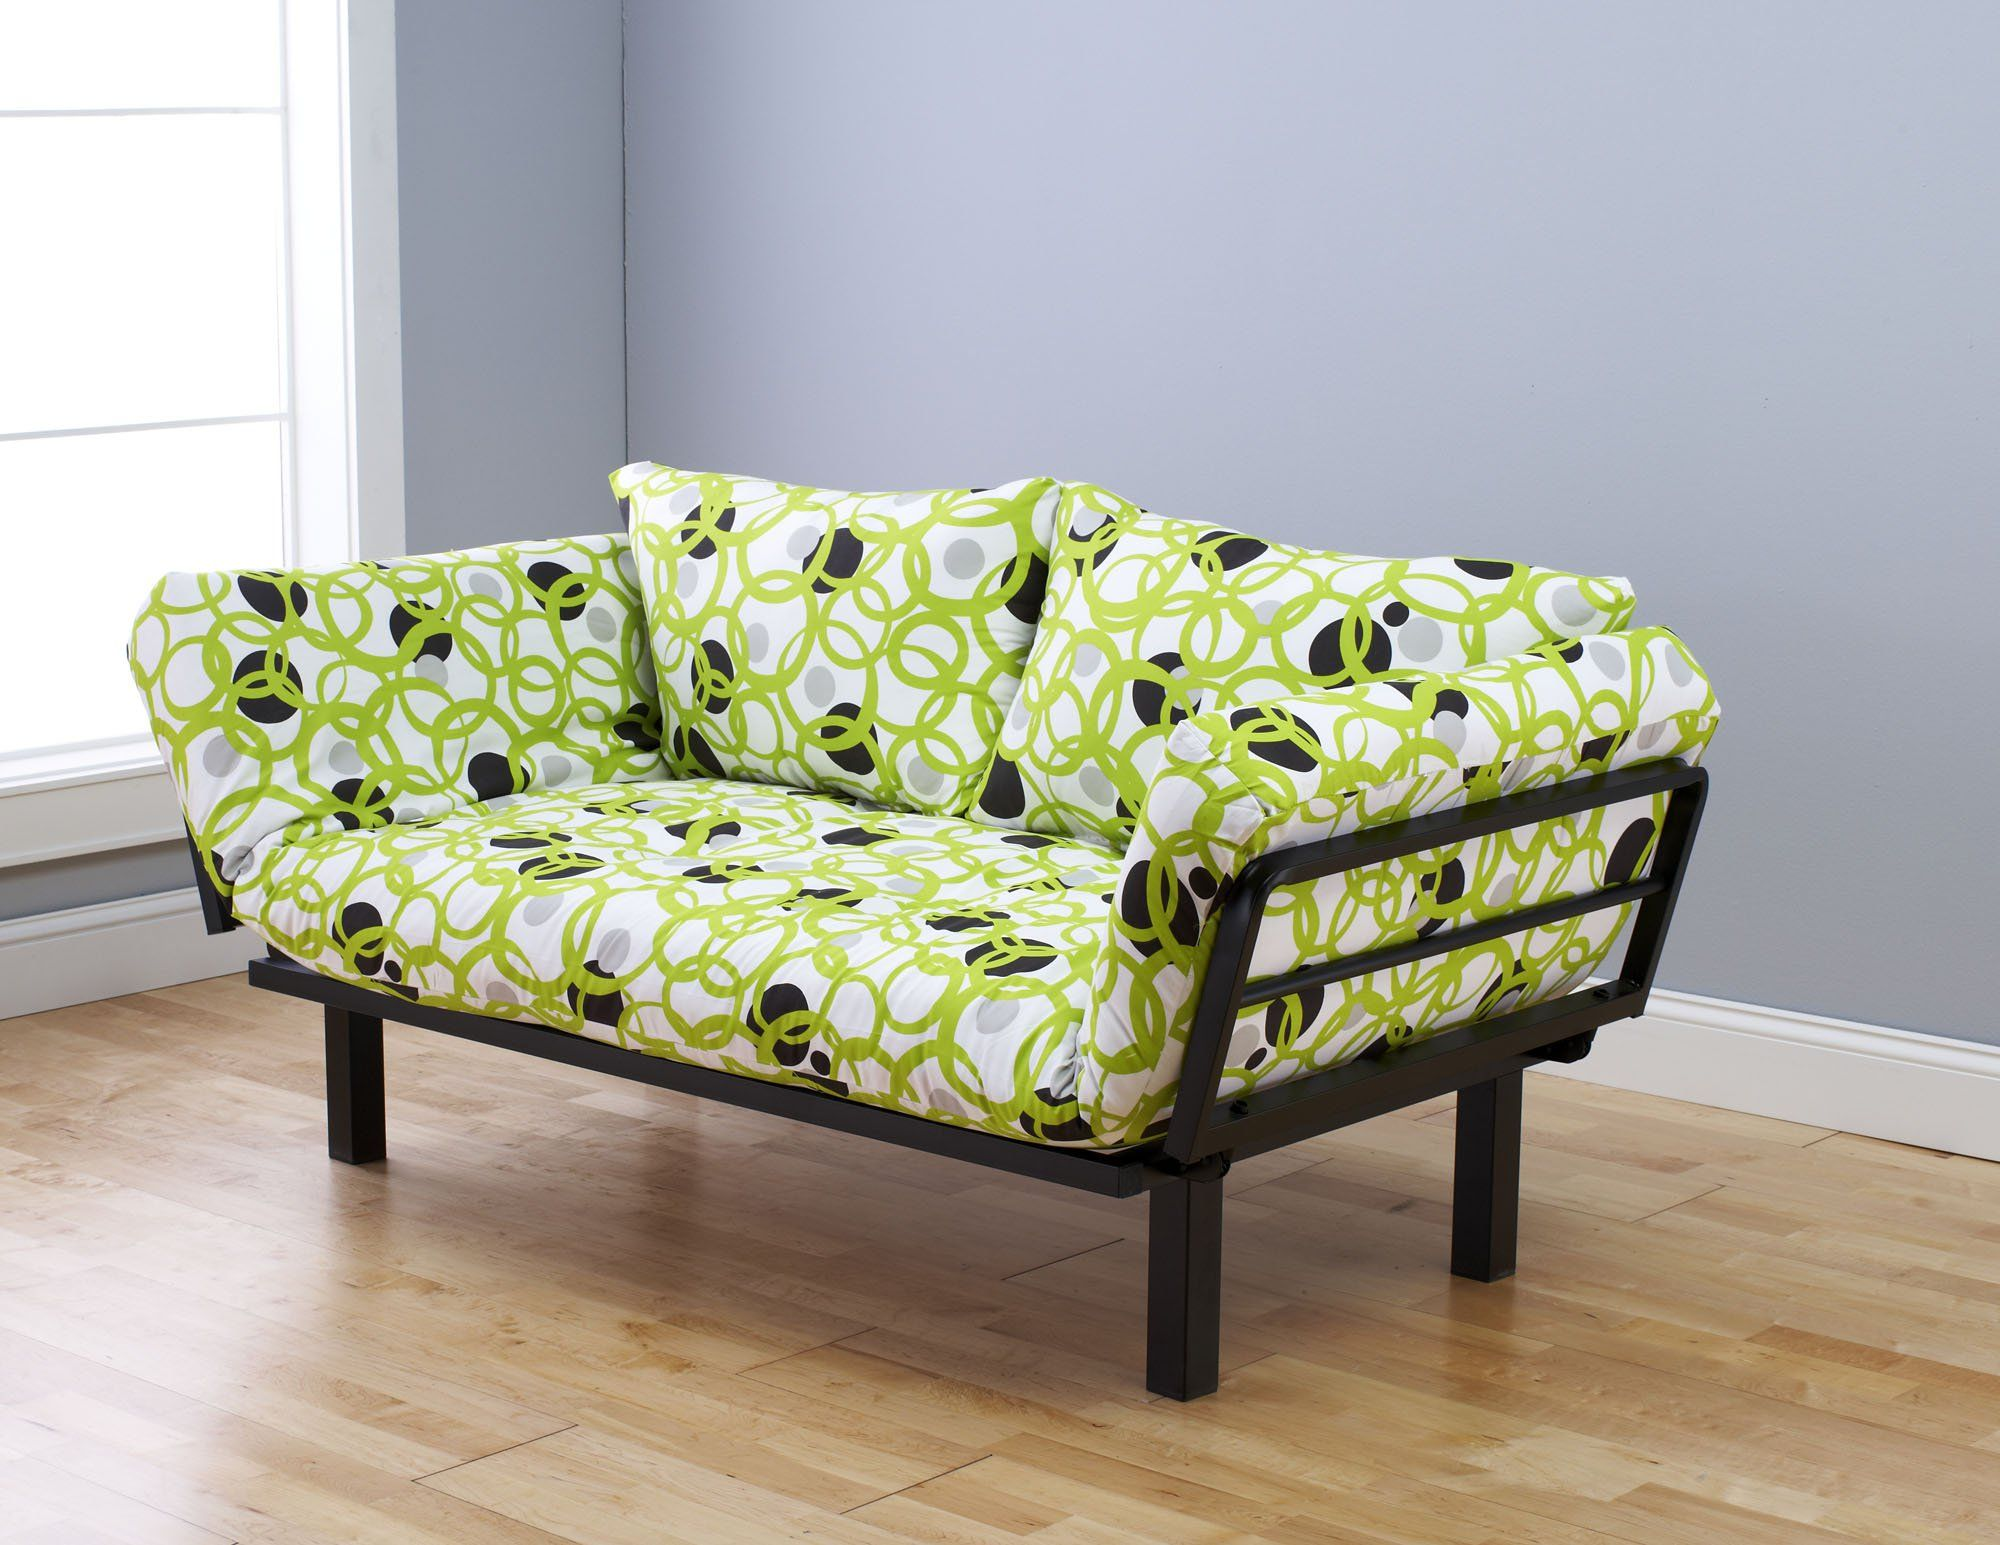 Spacely Futon Daybed/Lounger with Mattress Full Circle by